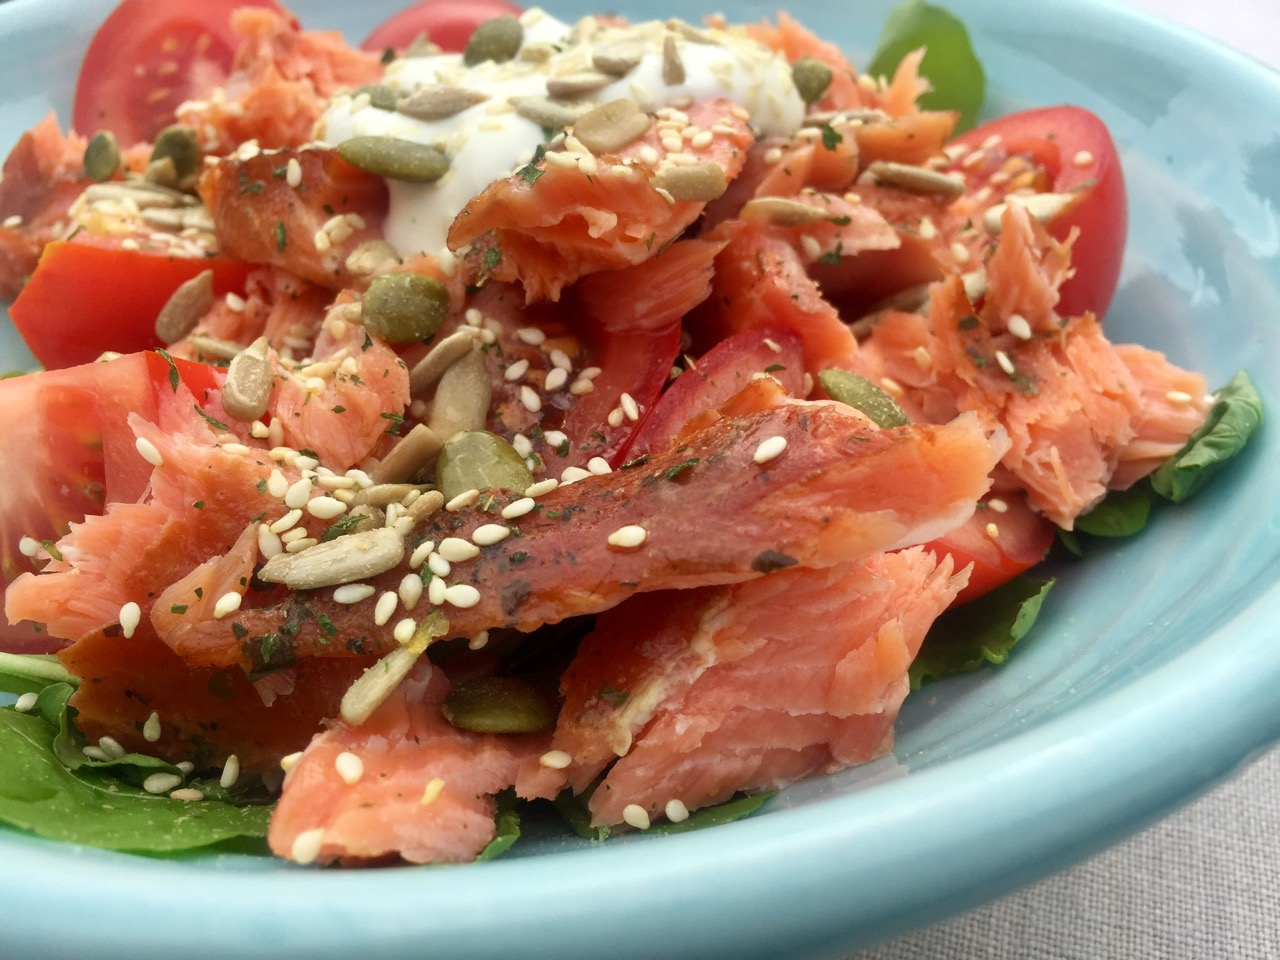 Smoked fish and tomato salad